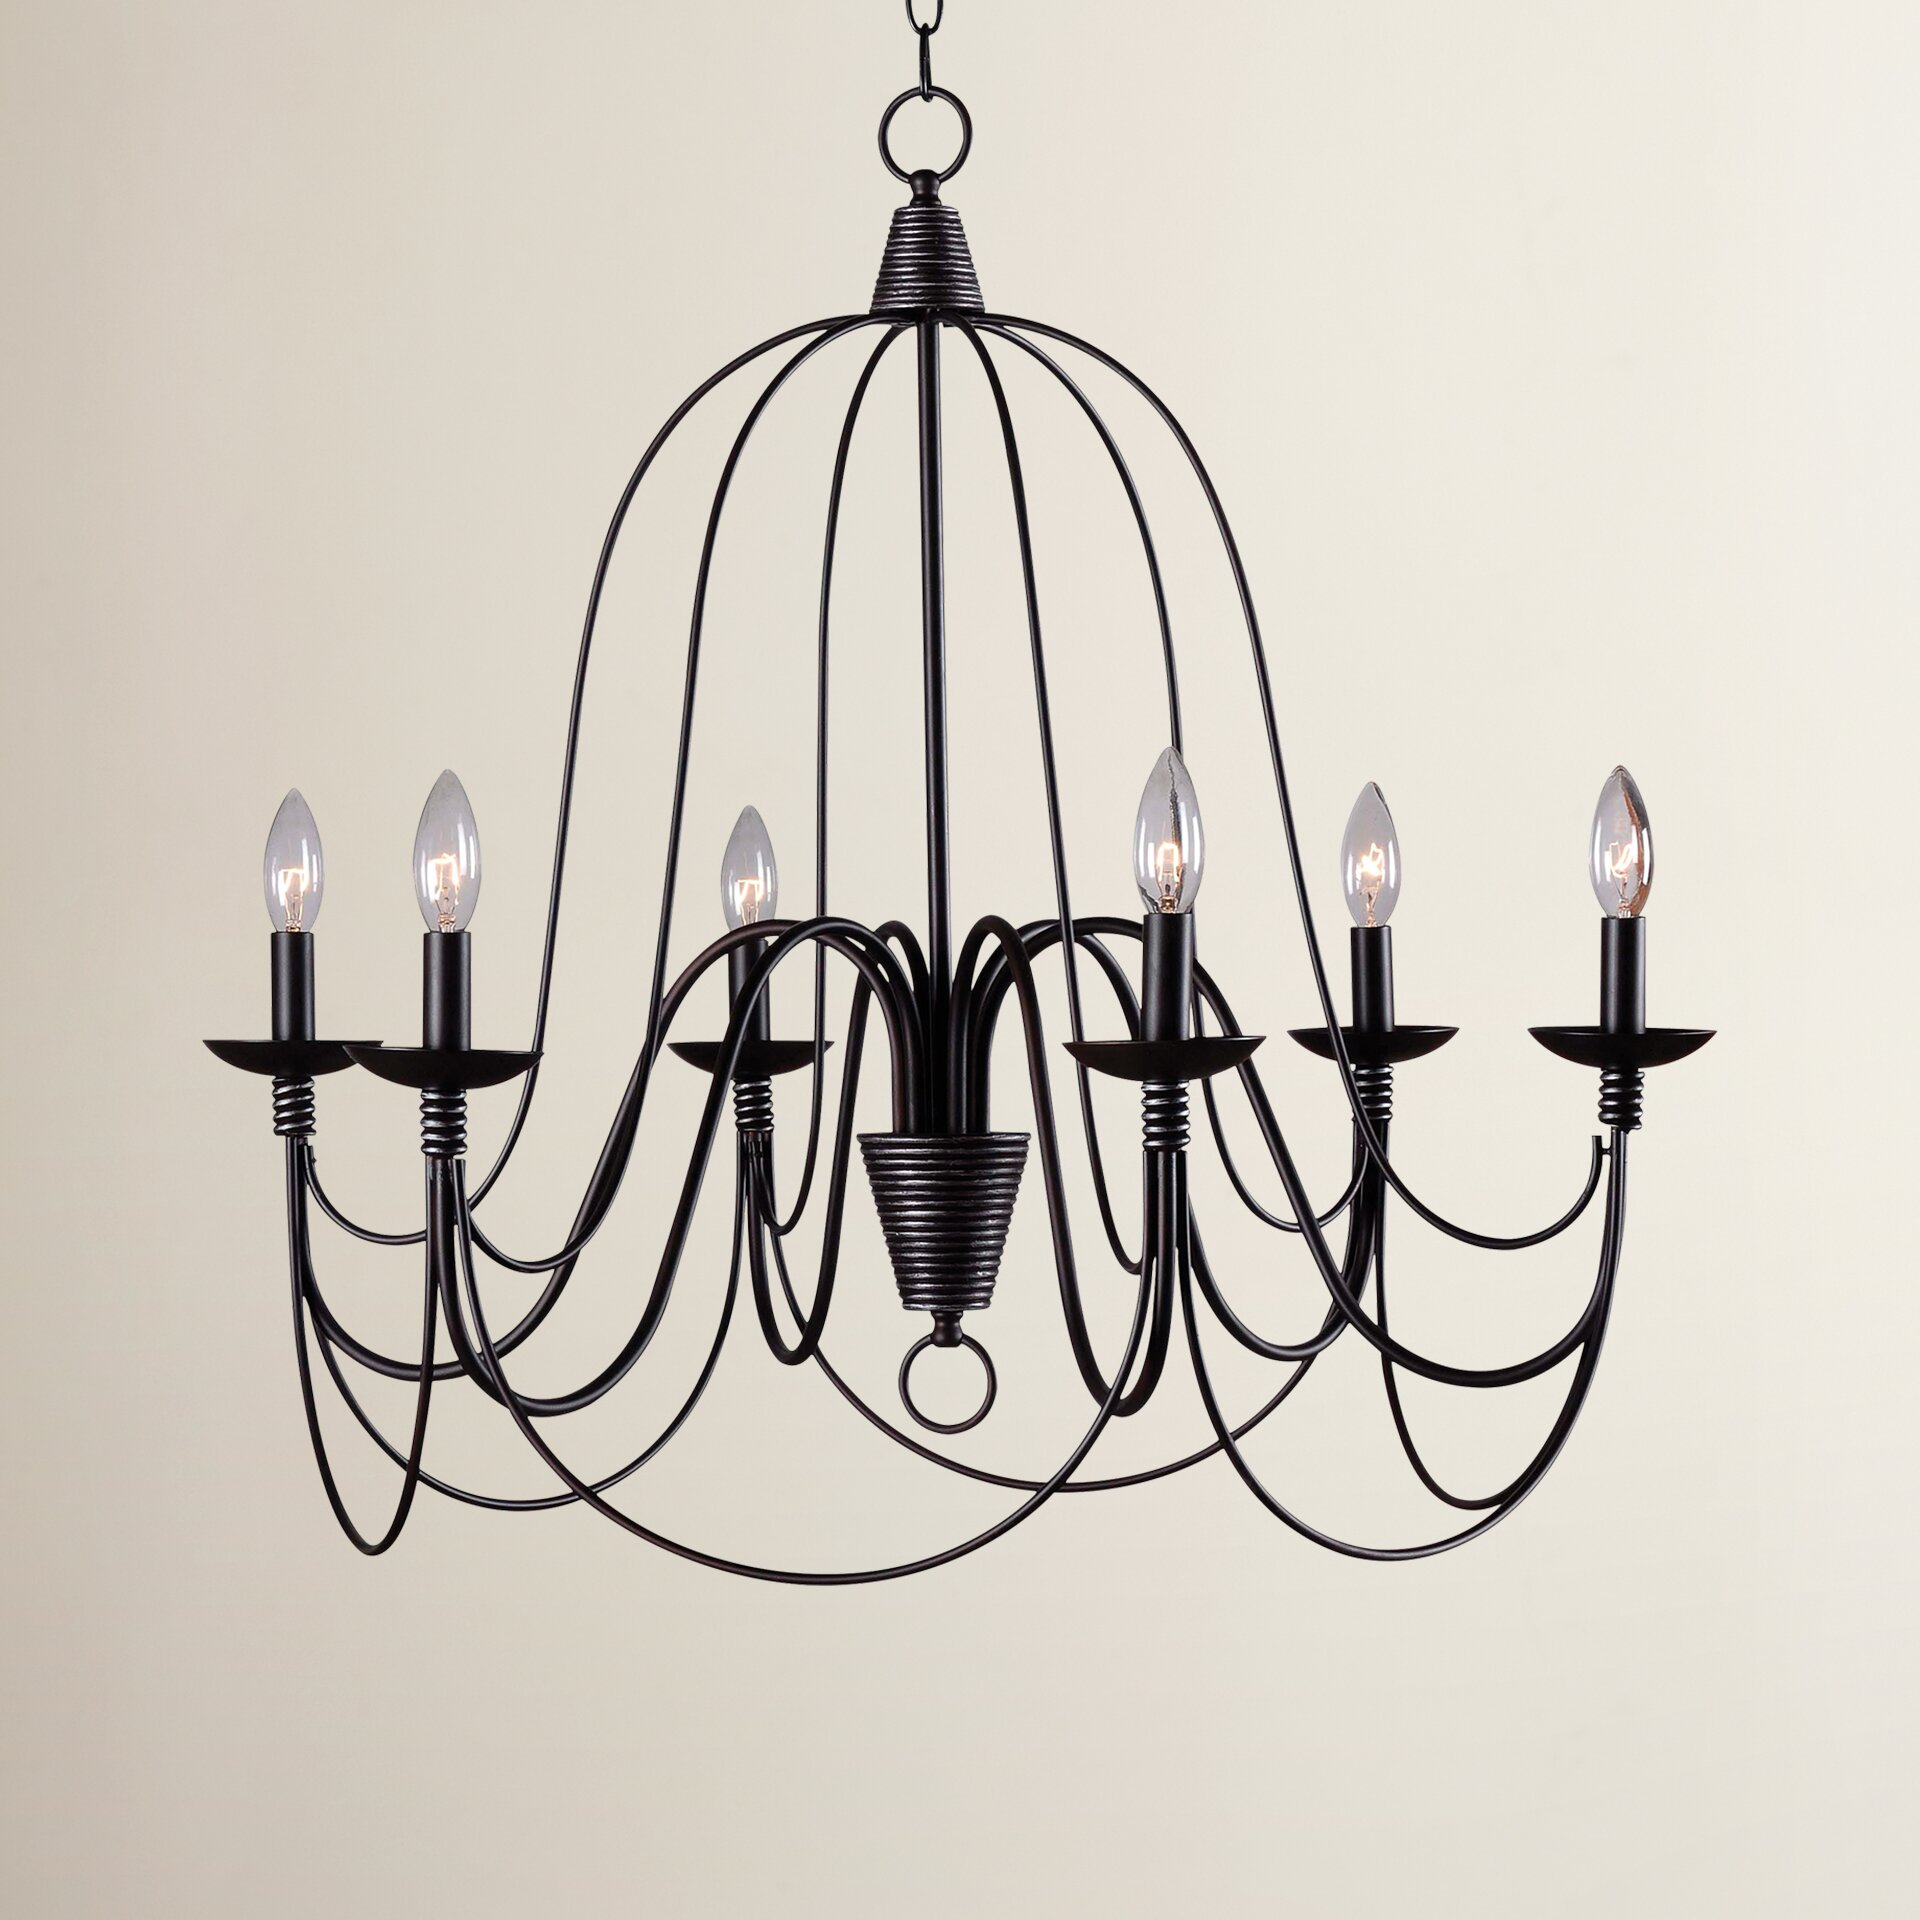 Wayfair Chandelier: Red Barrel Studio Big Sky 6 Light Candle Chandelier